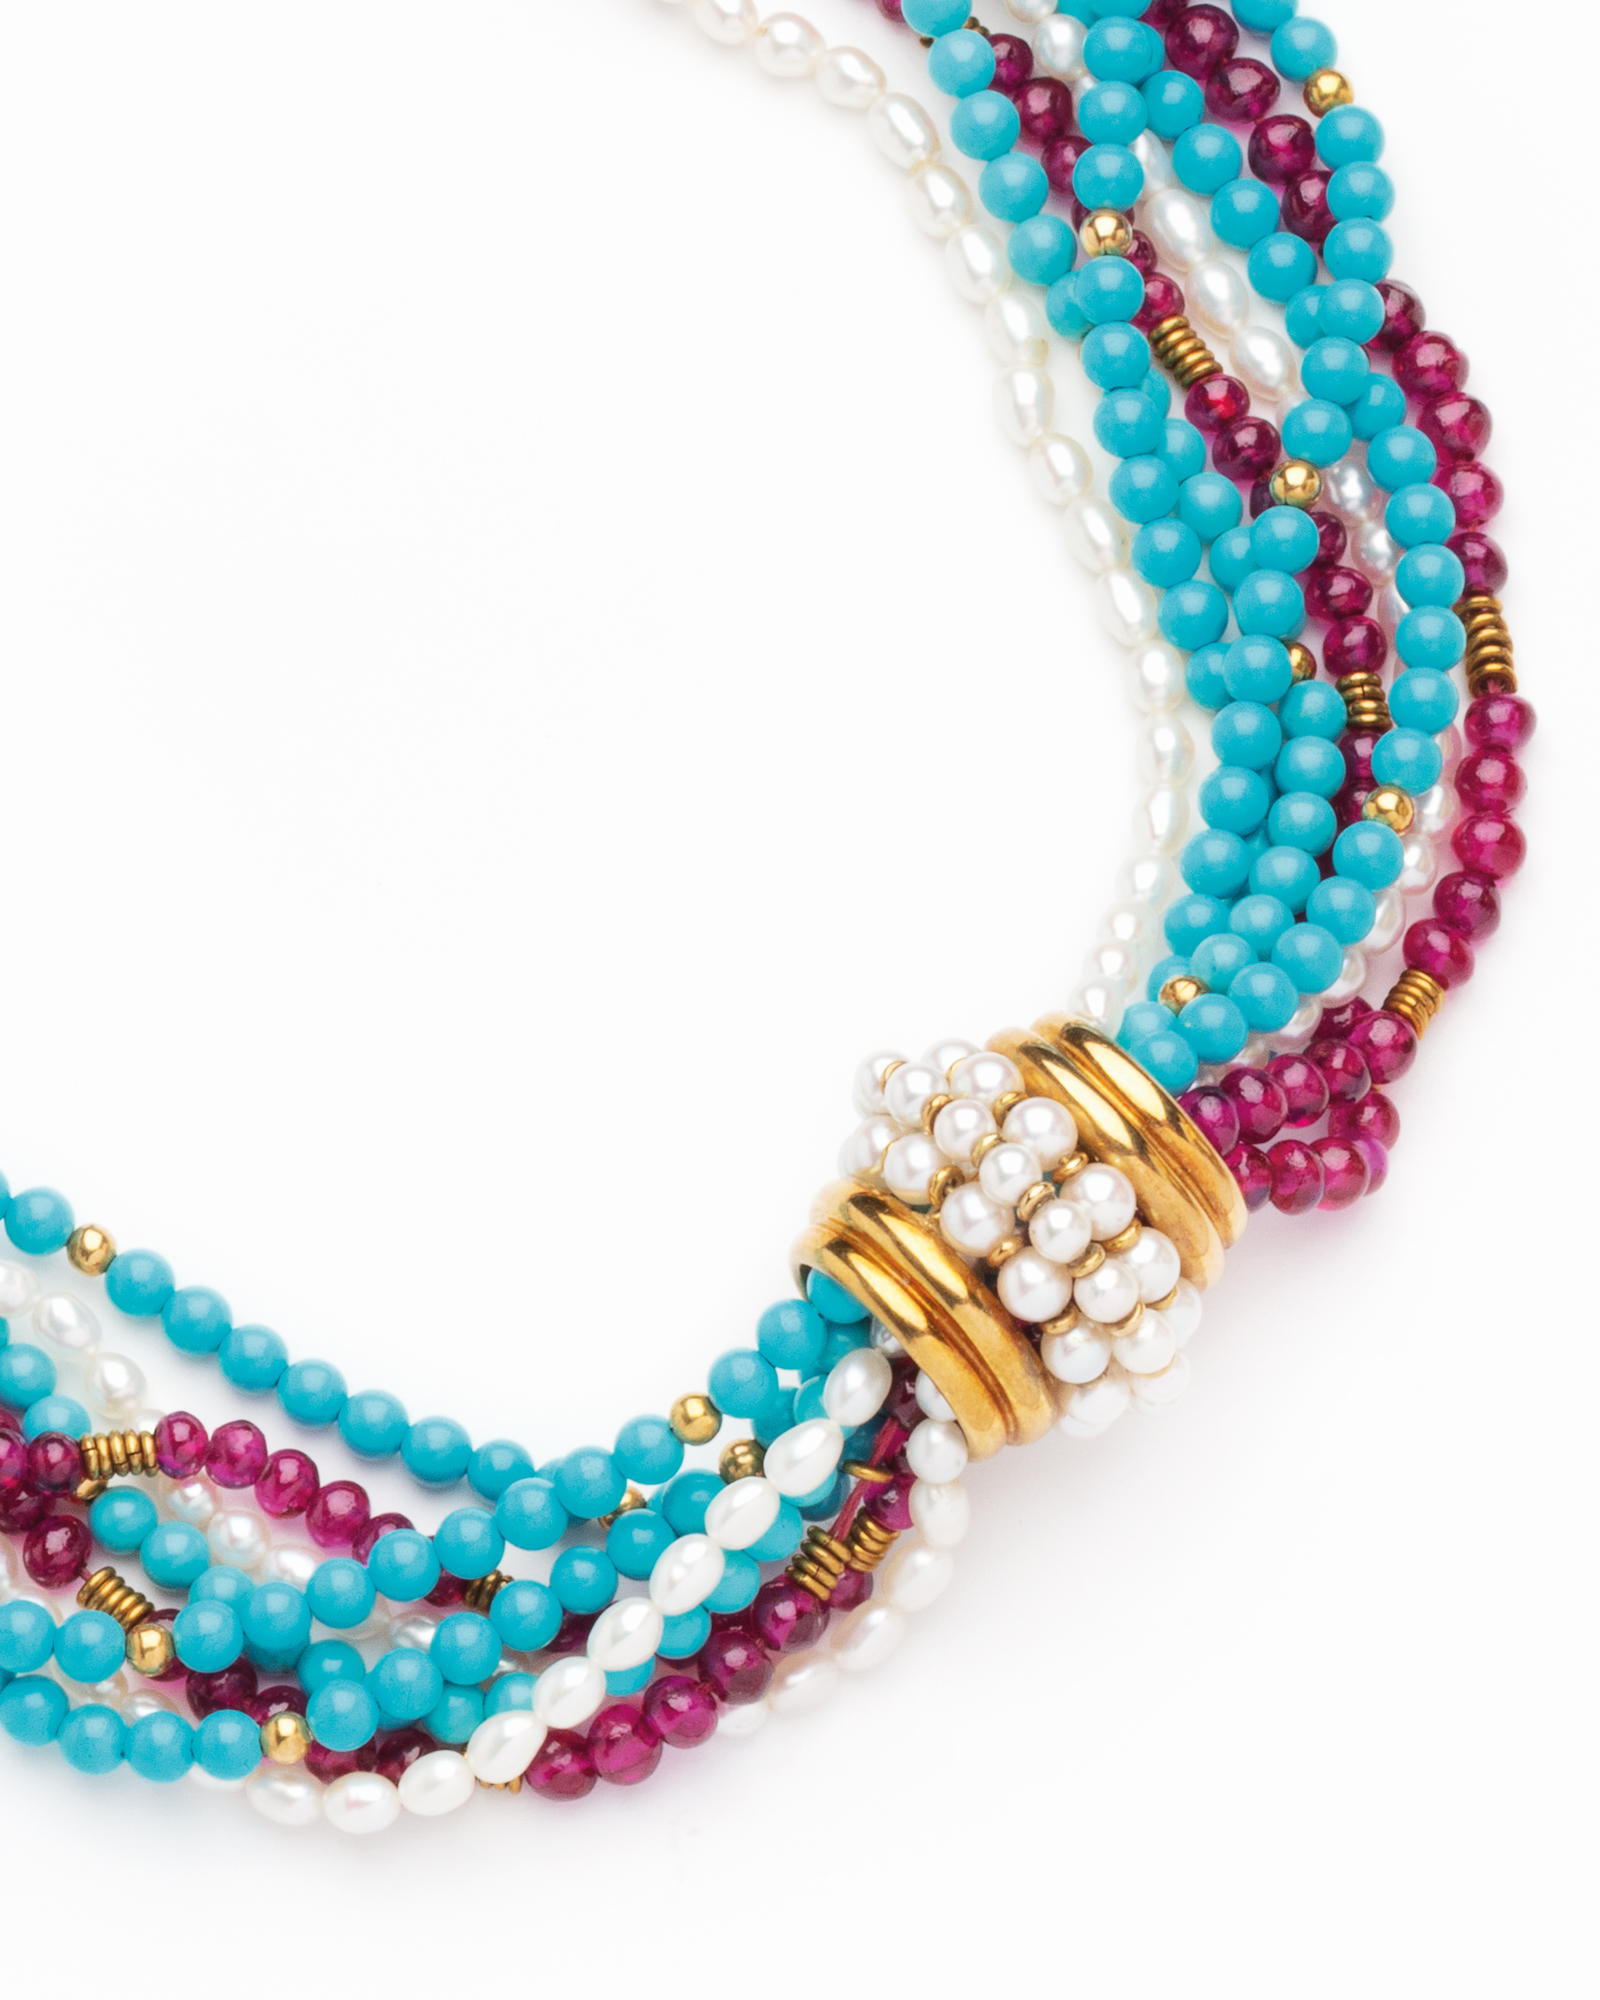 A gold, turquoise, garnet and cultured pearl necklace